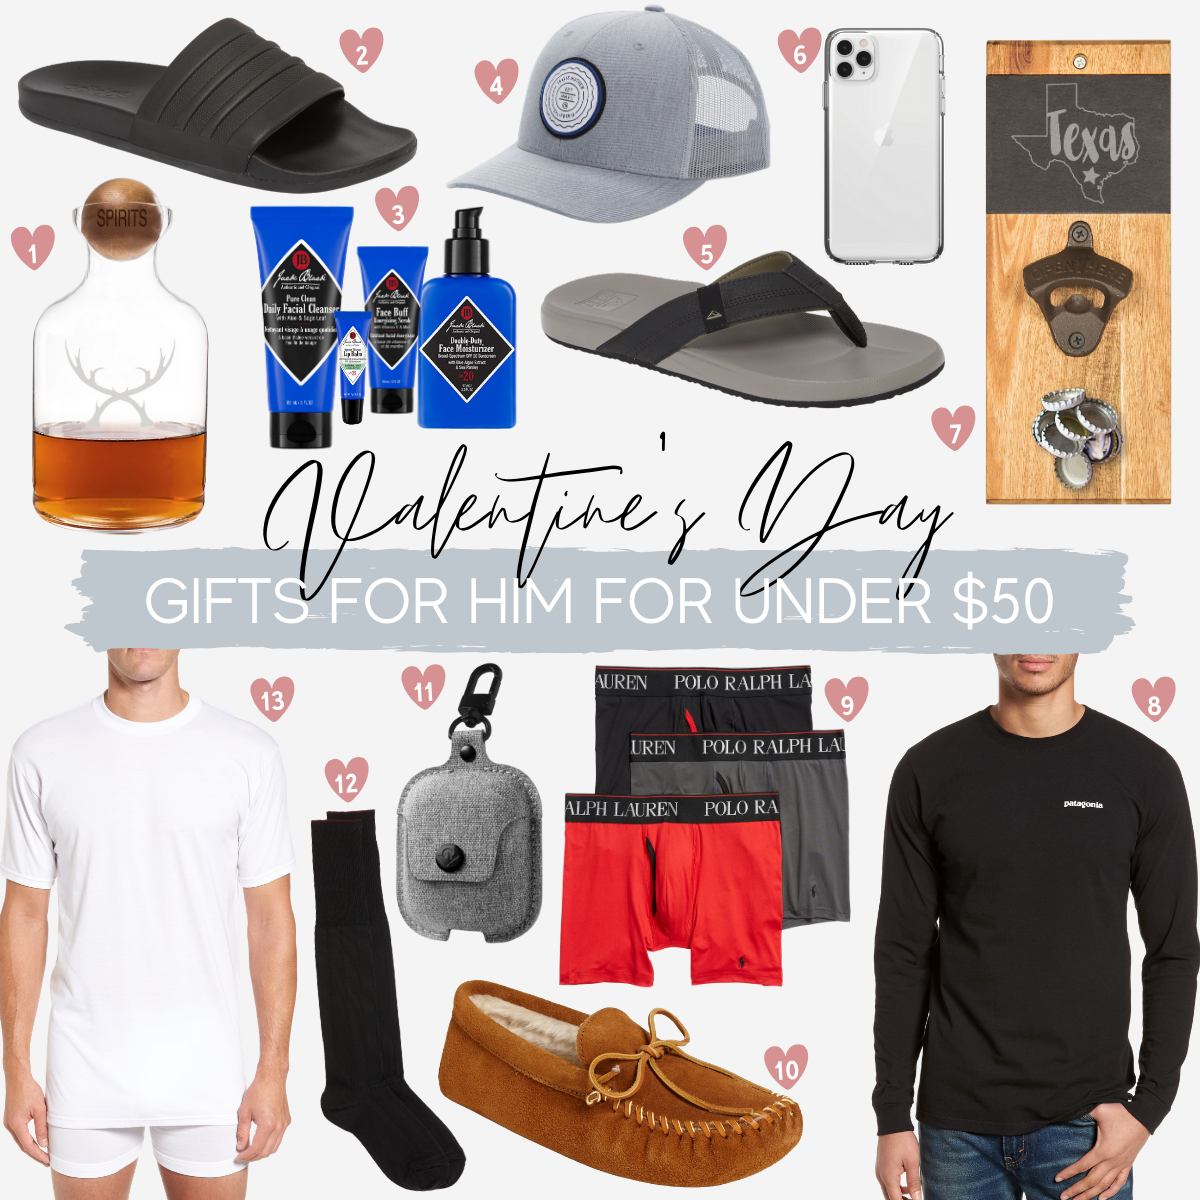 Valentine's Day gifts under $50 by popular Houston life and style blog, Haute and Humid: collage image of a Nordstrom 'Antlers' Glass Decanter & Wood Stopper CATHY'S CONCEPTS, Nordstrom Adilette Cloudfoam Mono Sport Slide ADIDAS, Nordstrom Skin Saviors Set JACK BLACK. Nordstrom Trip L Trucker Hat TRAVISMATHEW, Nordstrom Cushion Bounce Phantom Flip Flop REEF, Nordstrom Presidio Stay Clear iPhone 11/11 Pro/11 Pro Max Phone Case SPECK, Nordstrom My State Wall Bottle Opener CATHY'S CONCEPTS, Nordstrom Responsibili-Tee Long Sleeve T-Shirt PATAGONIA, Nordstrom 4D 3-Pack Boxer Briefs POLO RALPH LAUREN, Nordstrom Suede Moccasin with Faux Fur Lining MINNETONKA, Nordstrom Airsnap AirPod Case TWELVE SOUTH, Nordstrom Over the Calf Wool Dress Socks NORDSTROM MEN'S SHOP, and Nordstrom Regular Fit 4-Pack Supima® Cotton T-Shirts NORDSTROM MEN'S SHOP.